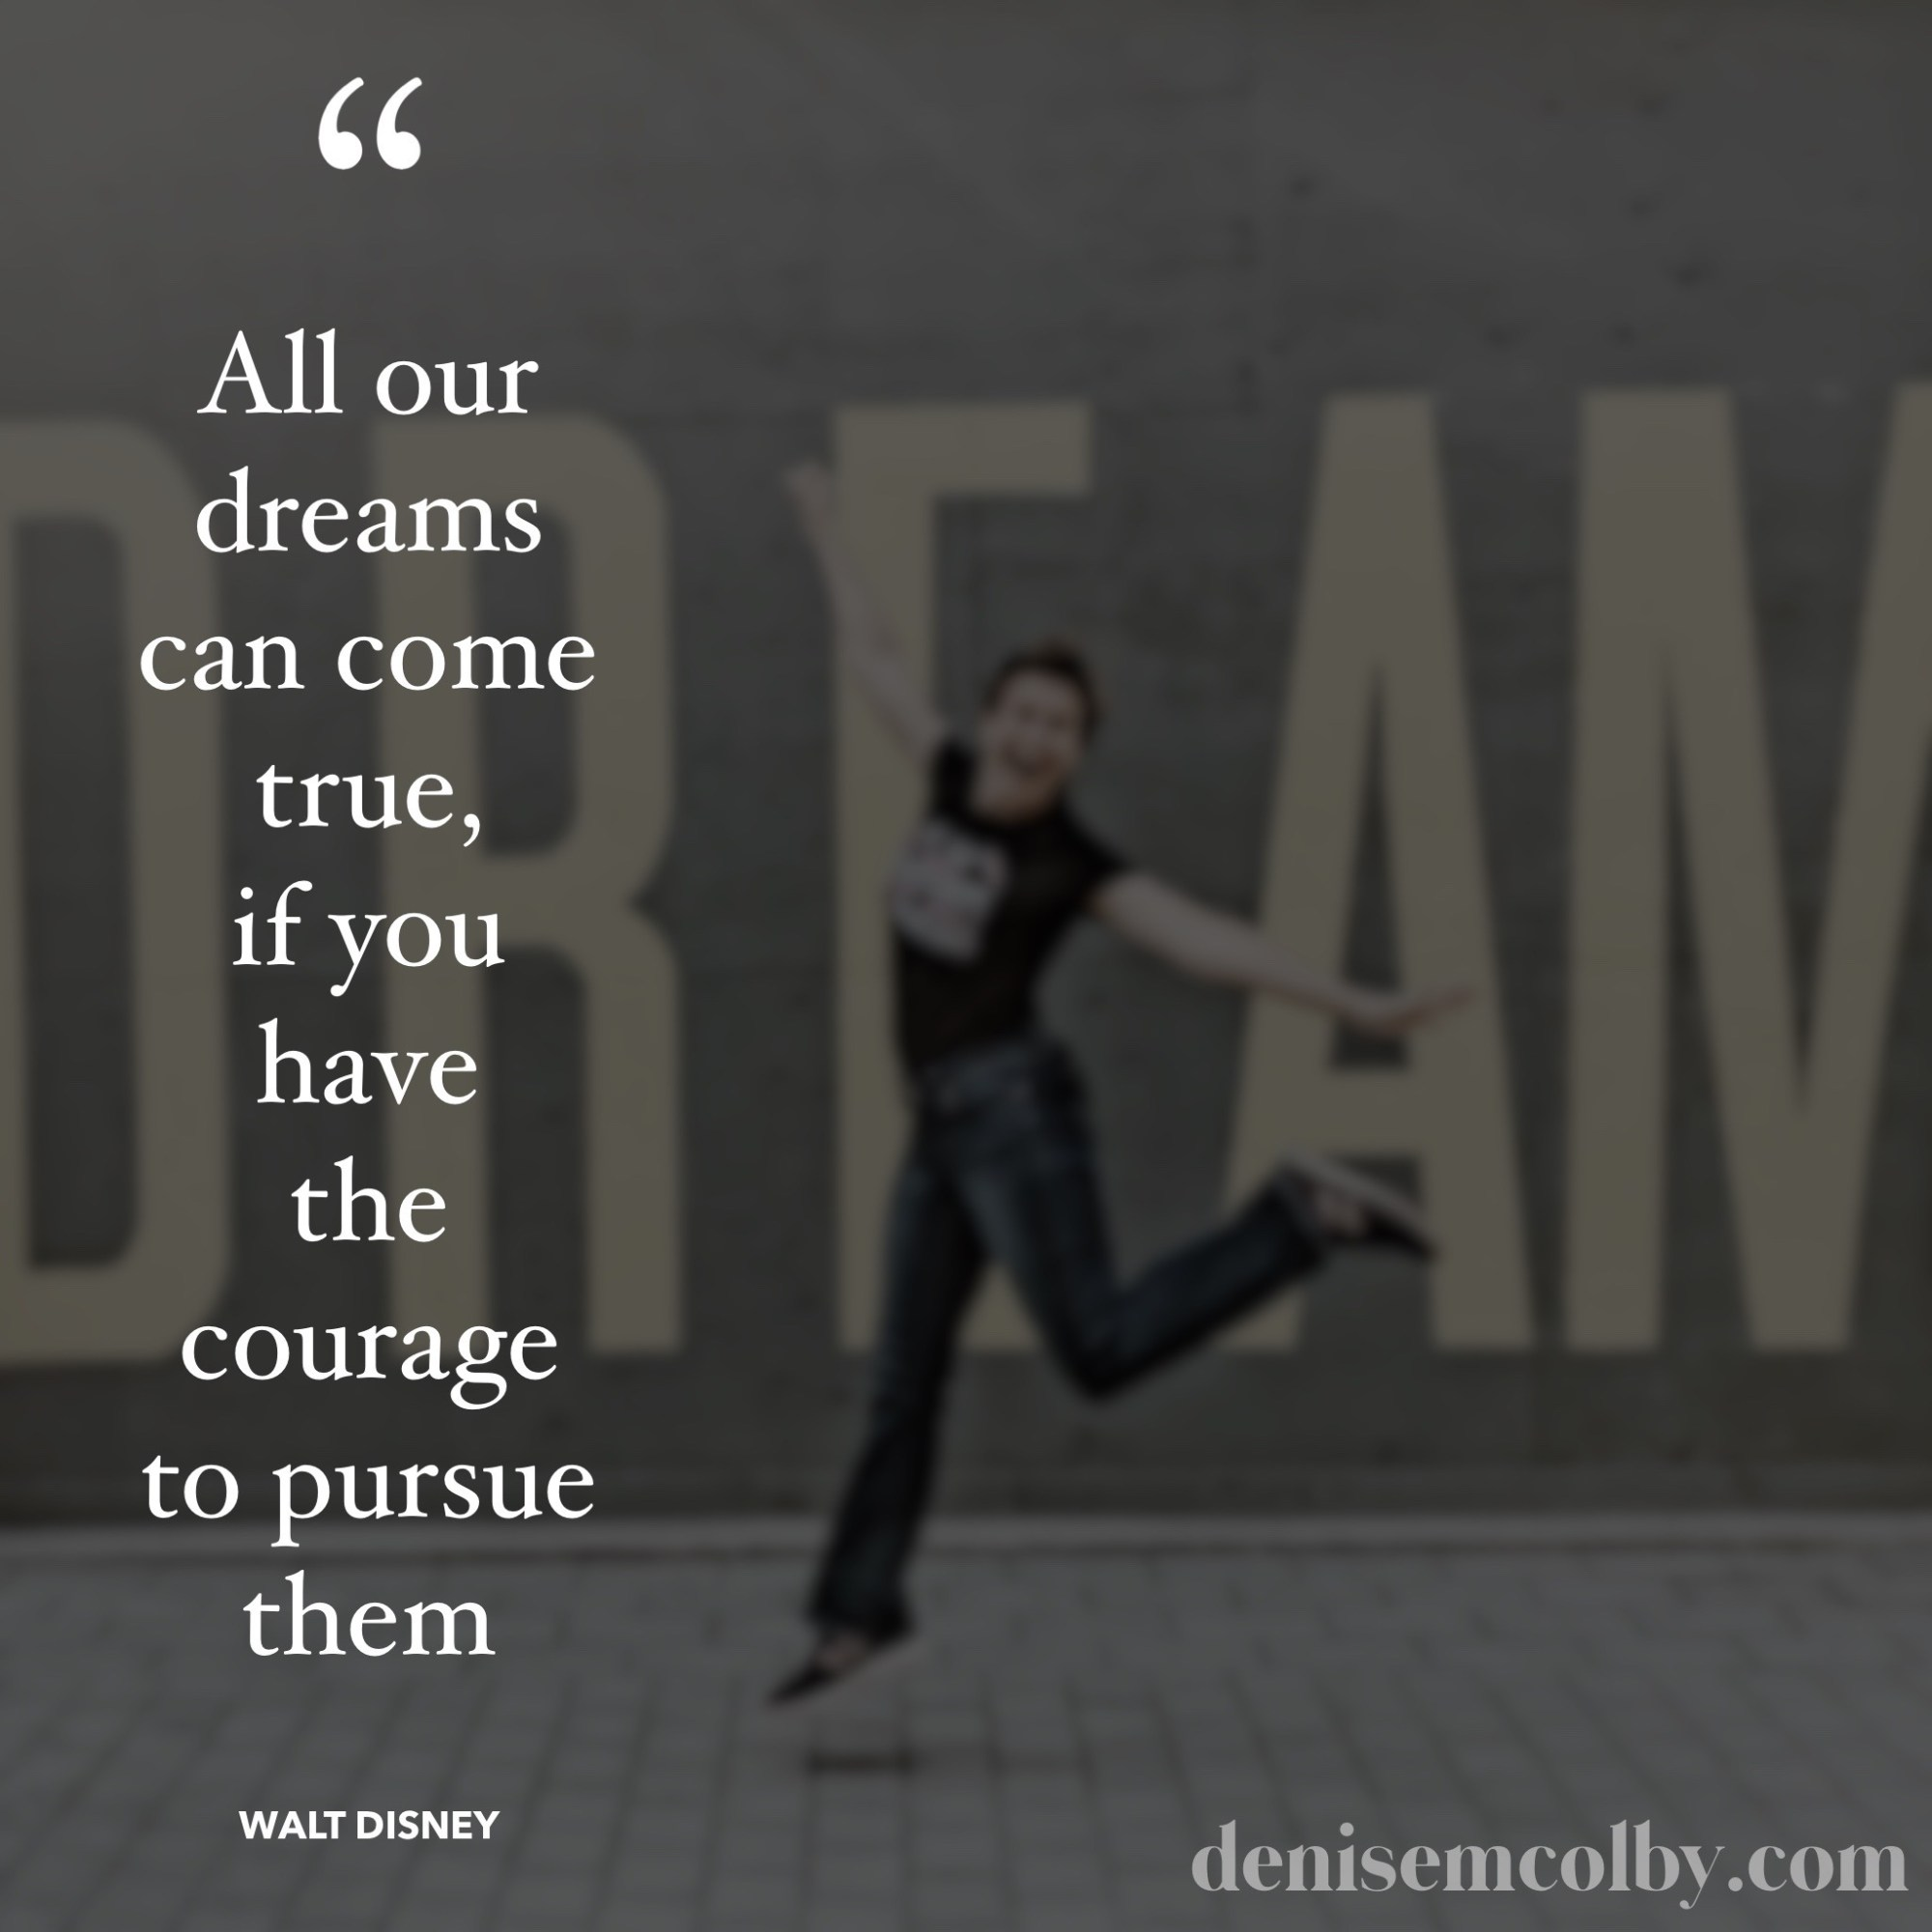 Walt Disney Quote with blurred photo of Denise M. Colby leaping in front of Dream sign